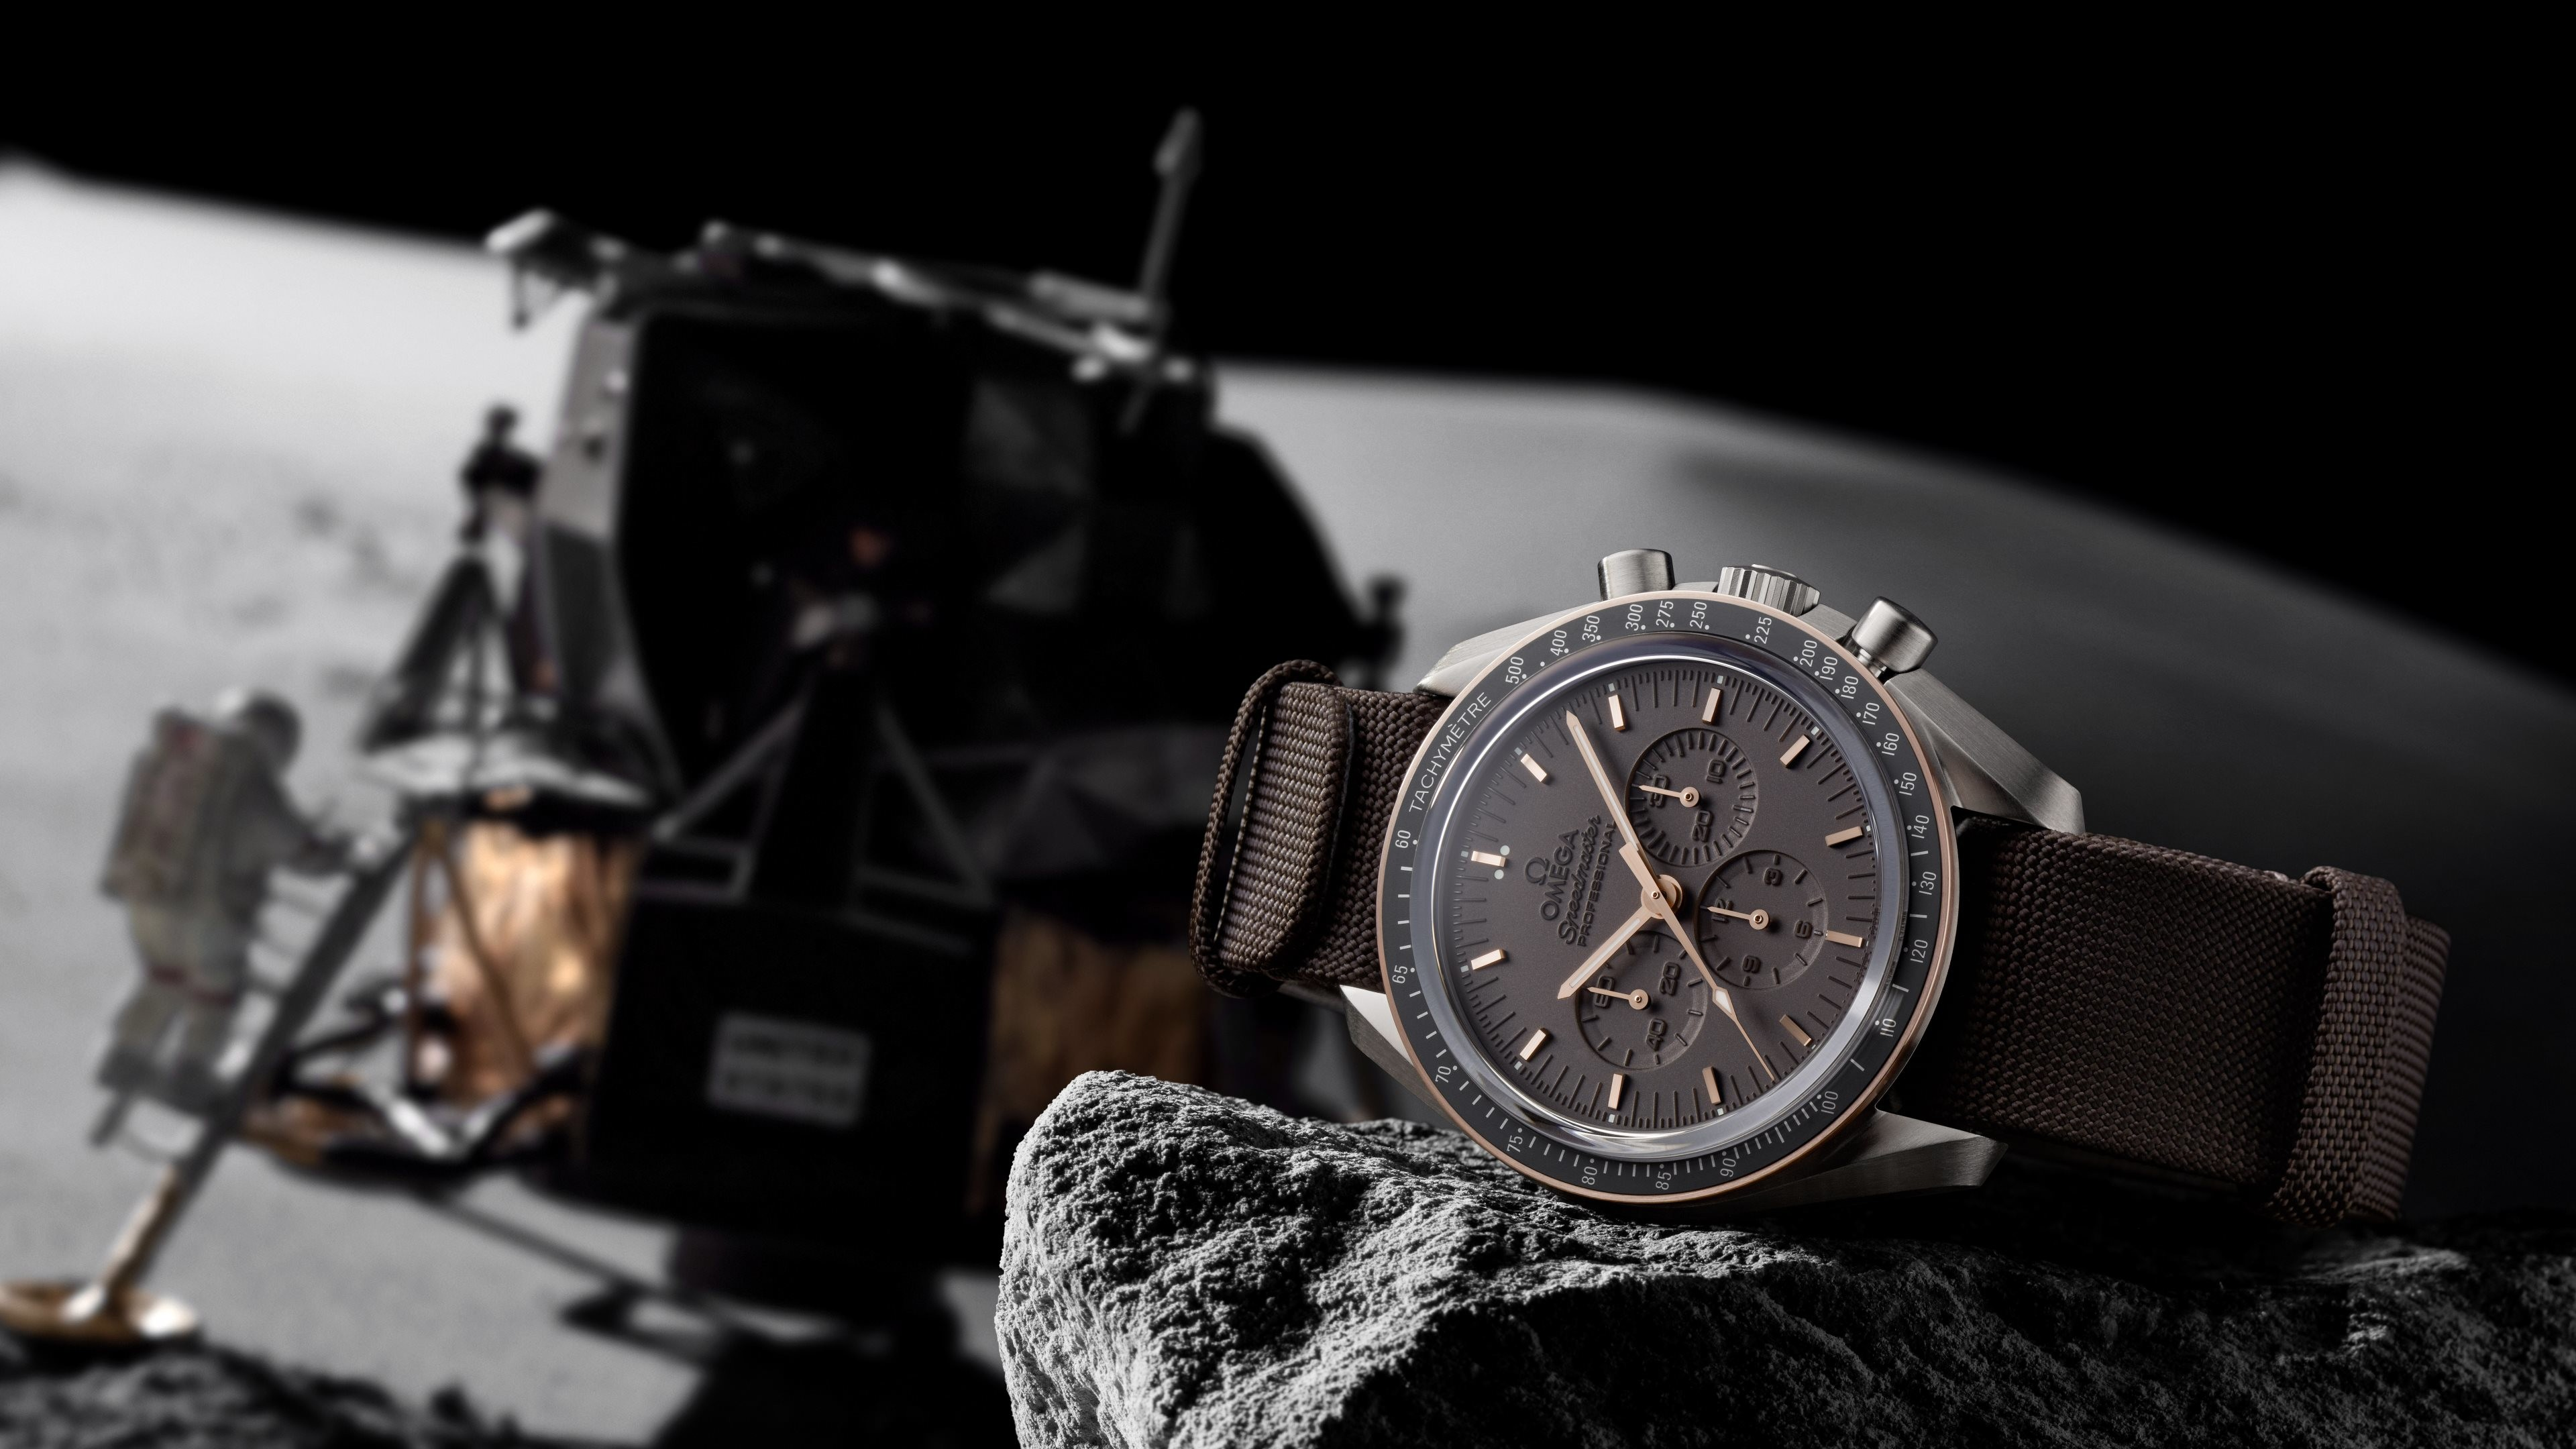 3840x2160 Omega Seamaster Watch Wallpapers A